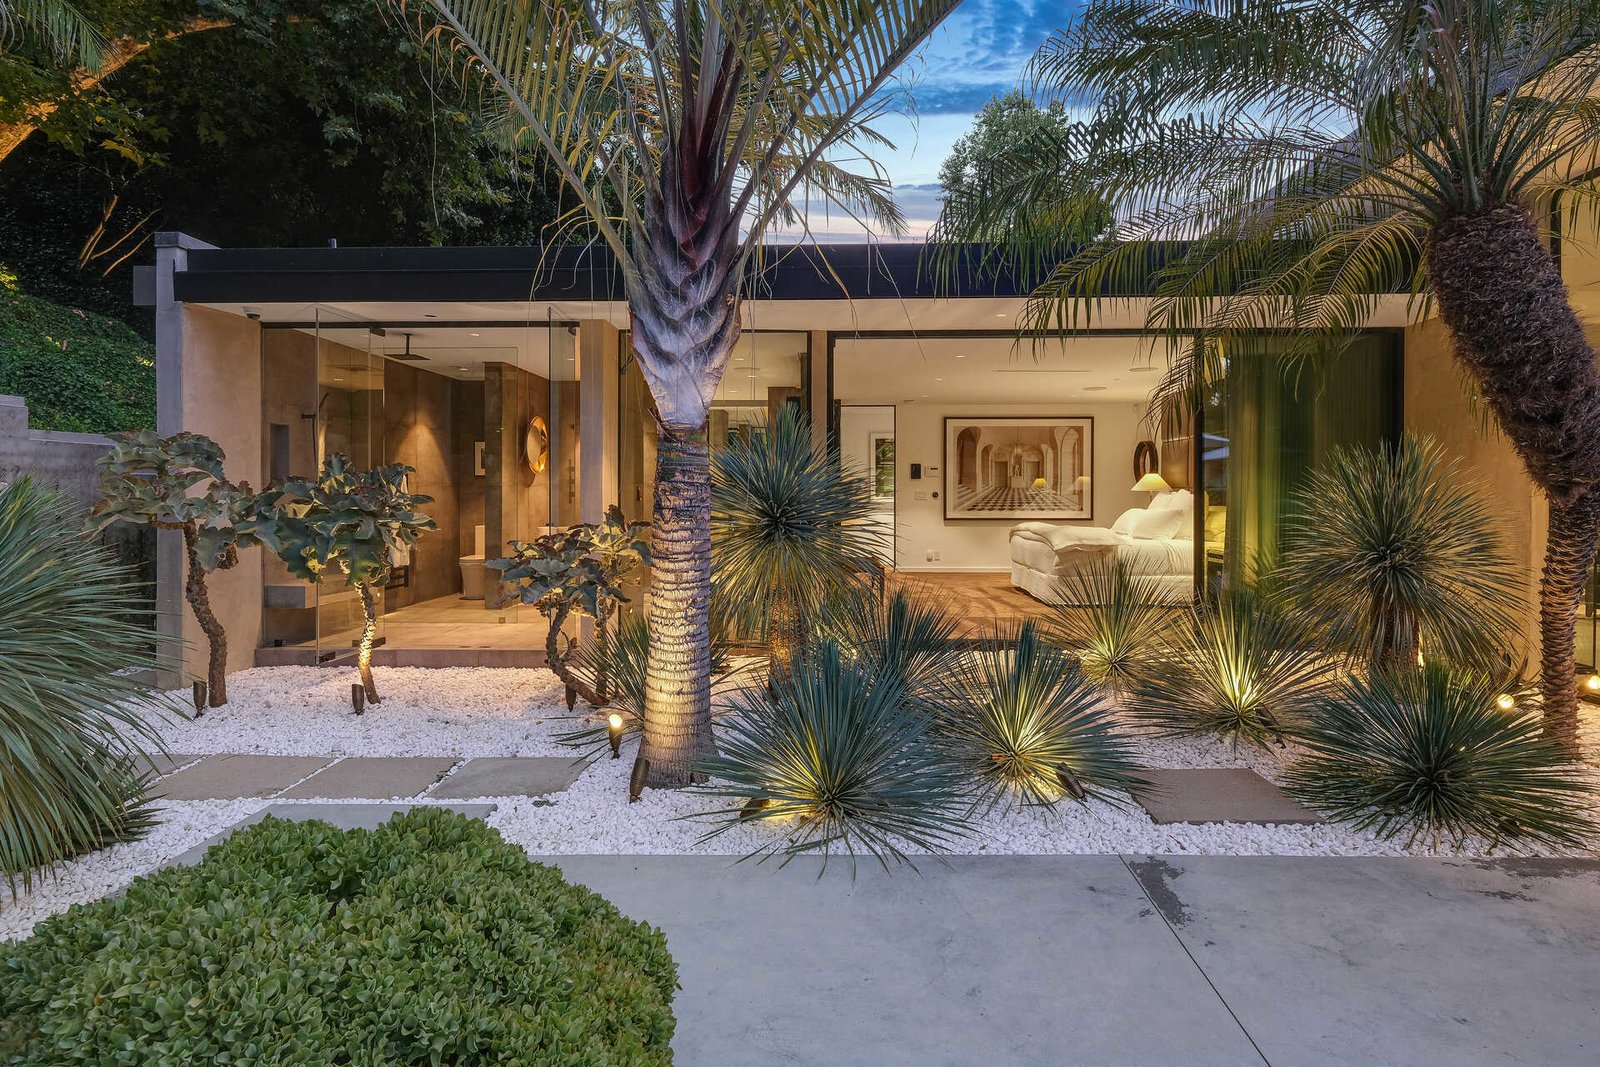 Outdoor, Concrete Patio, Porch, Deck, Stone Patio, Porch, Deck, Trees, Large Pools, Tubs, Shower, Shrubs, Large Patio, Porch, Deck, and Back Yard  A Midcentury Modern Oasis in Bel Air